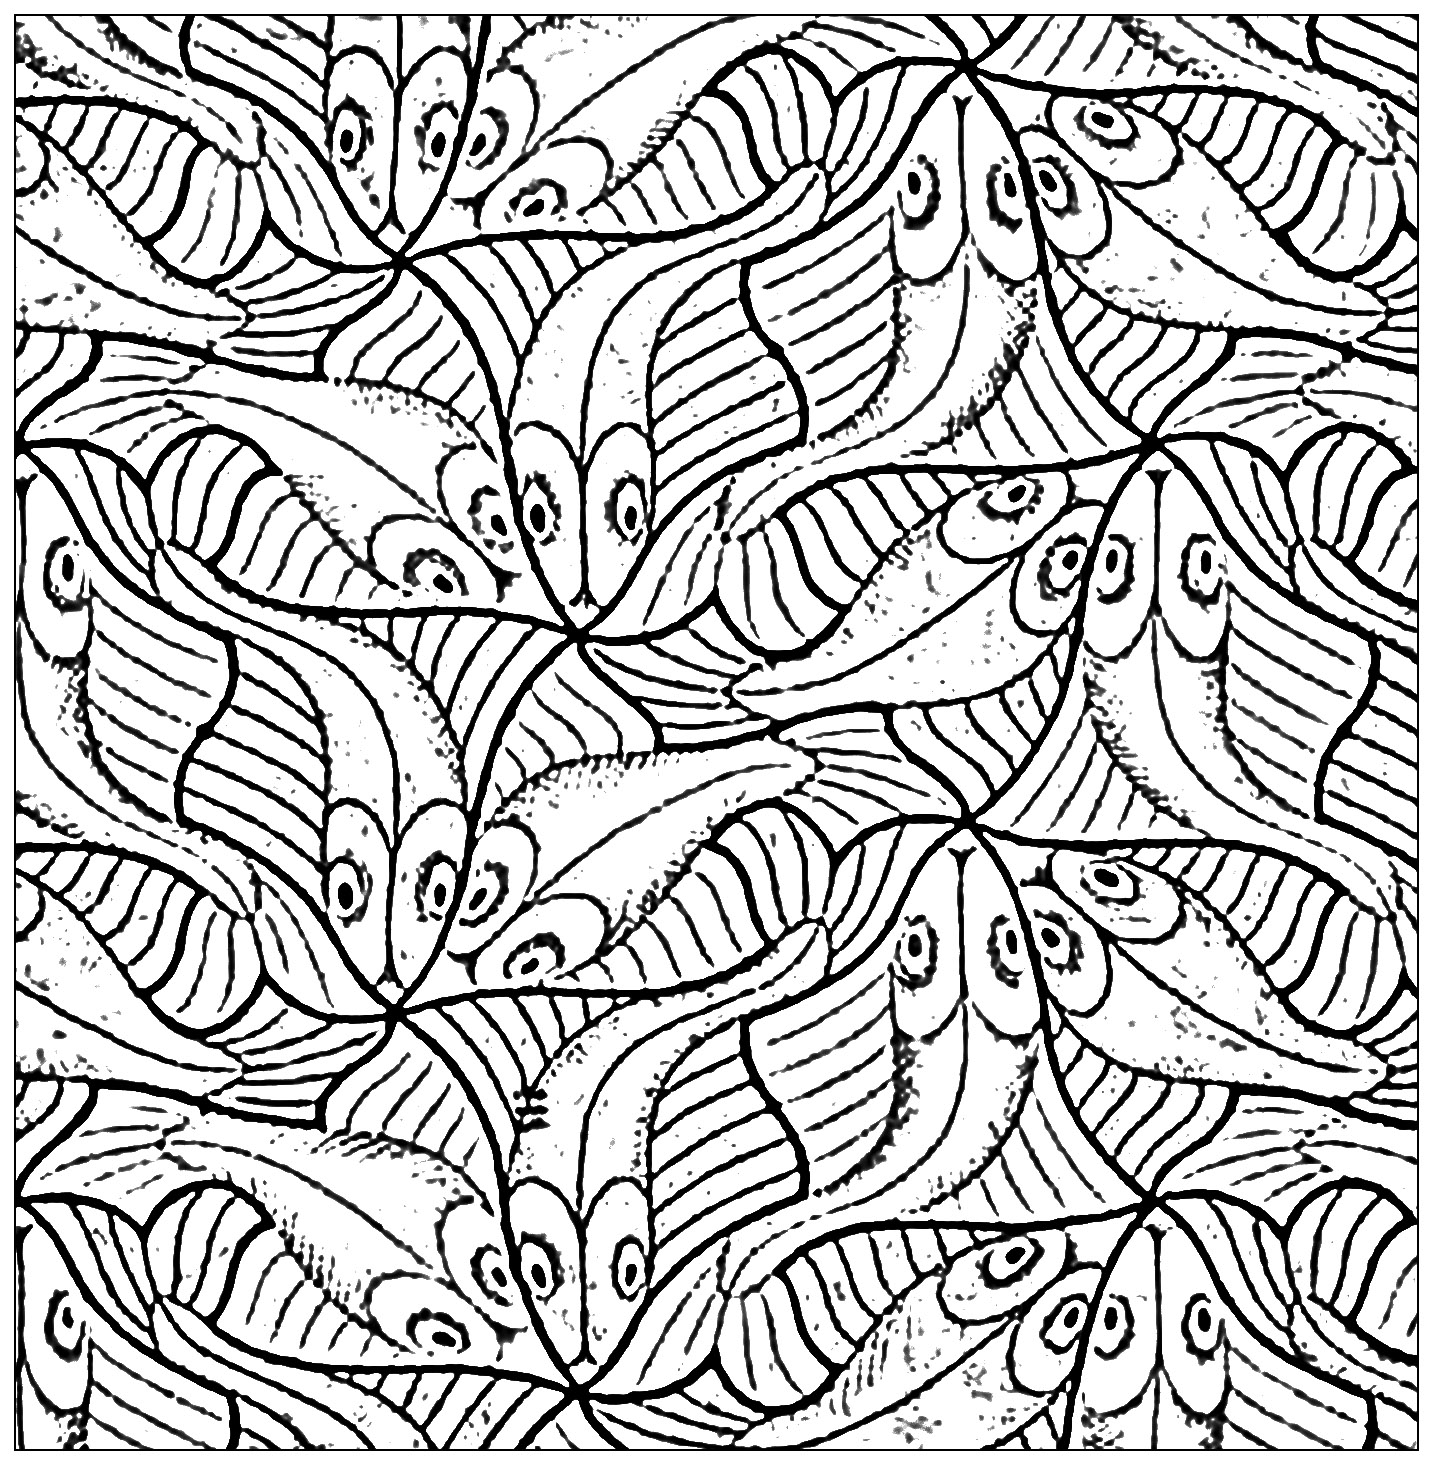 Pisces coloring page to print and color